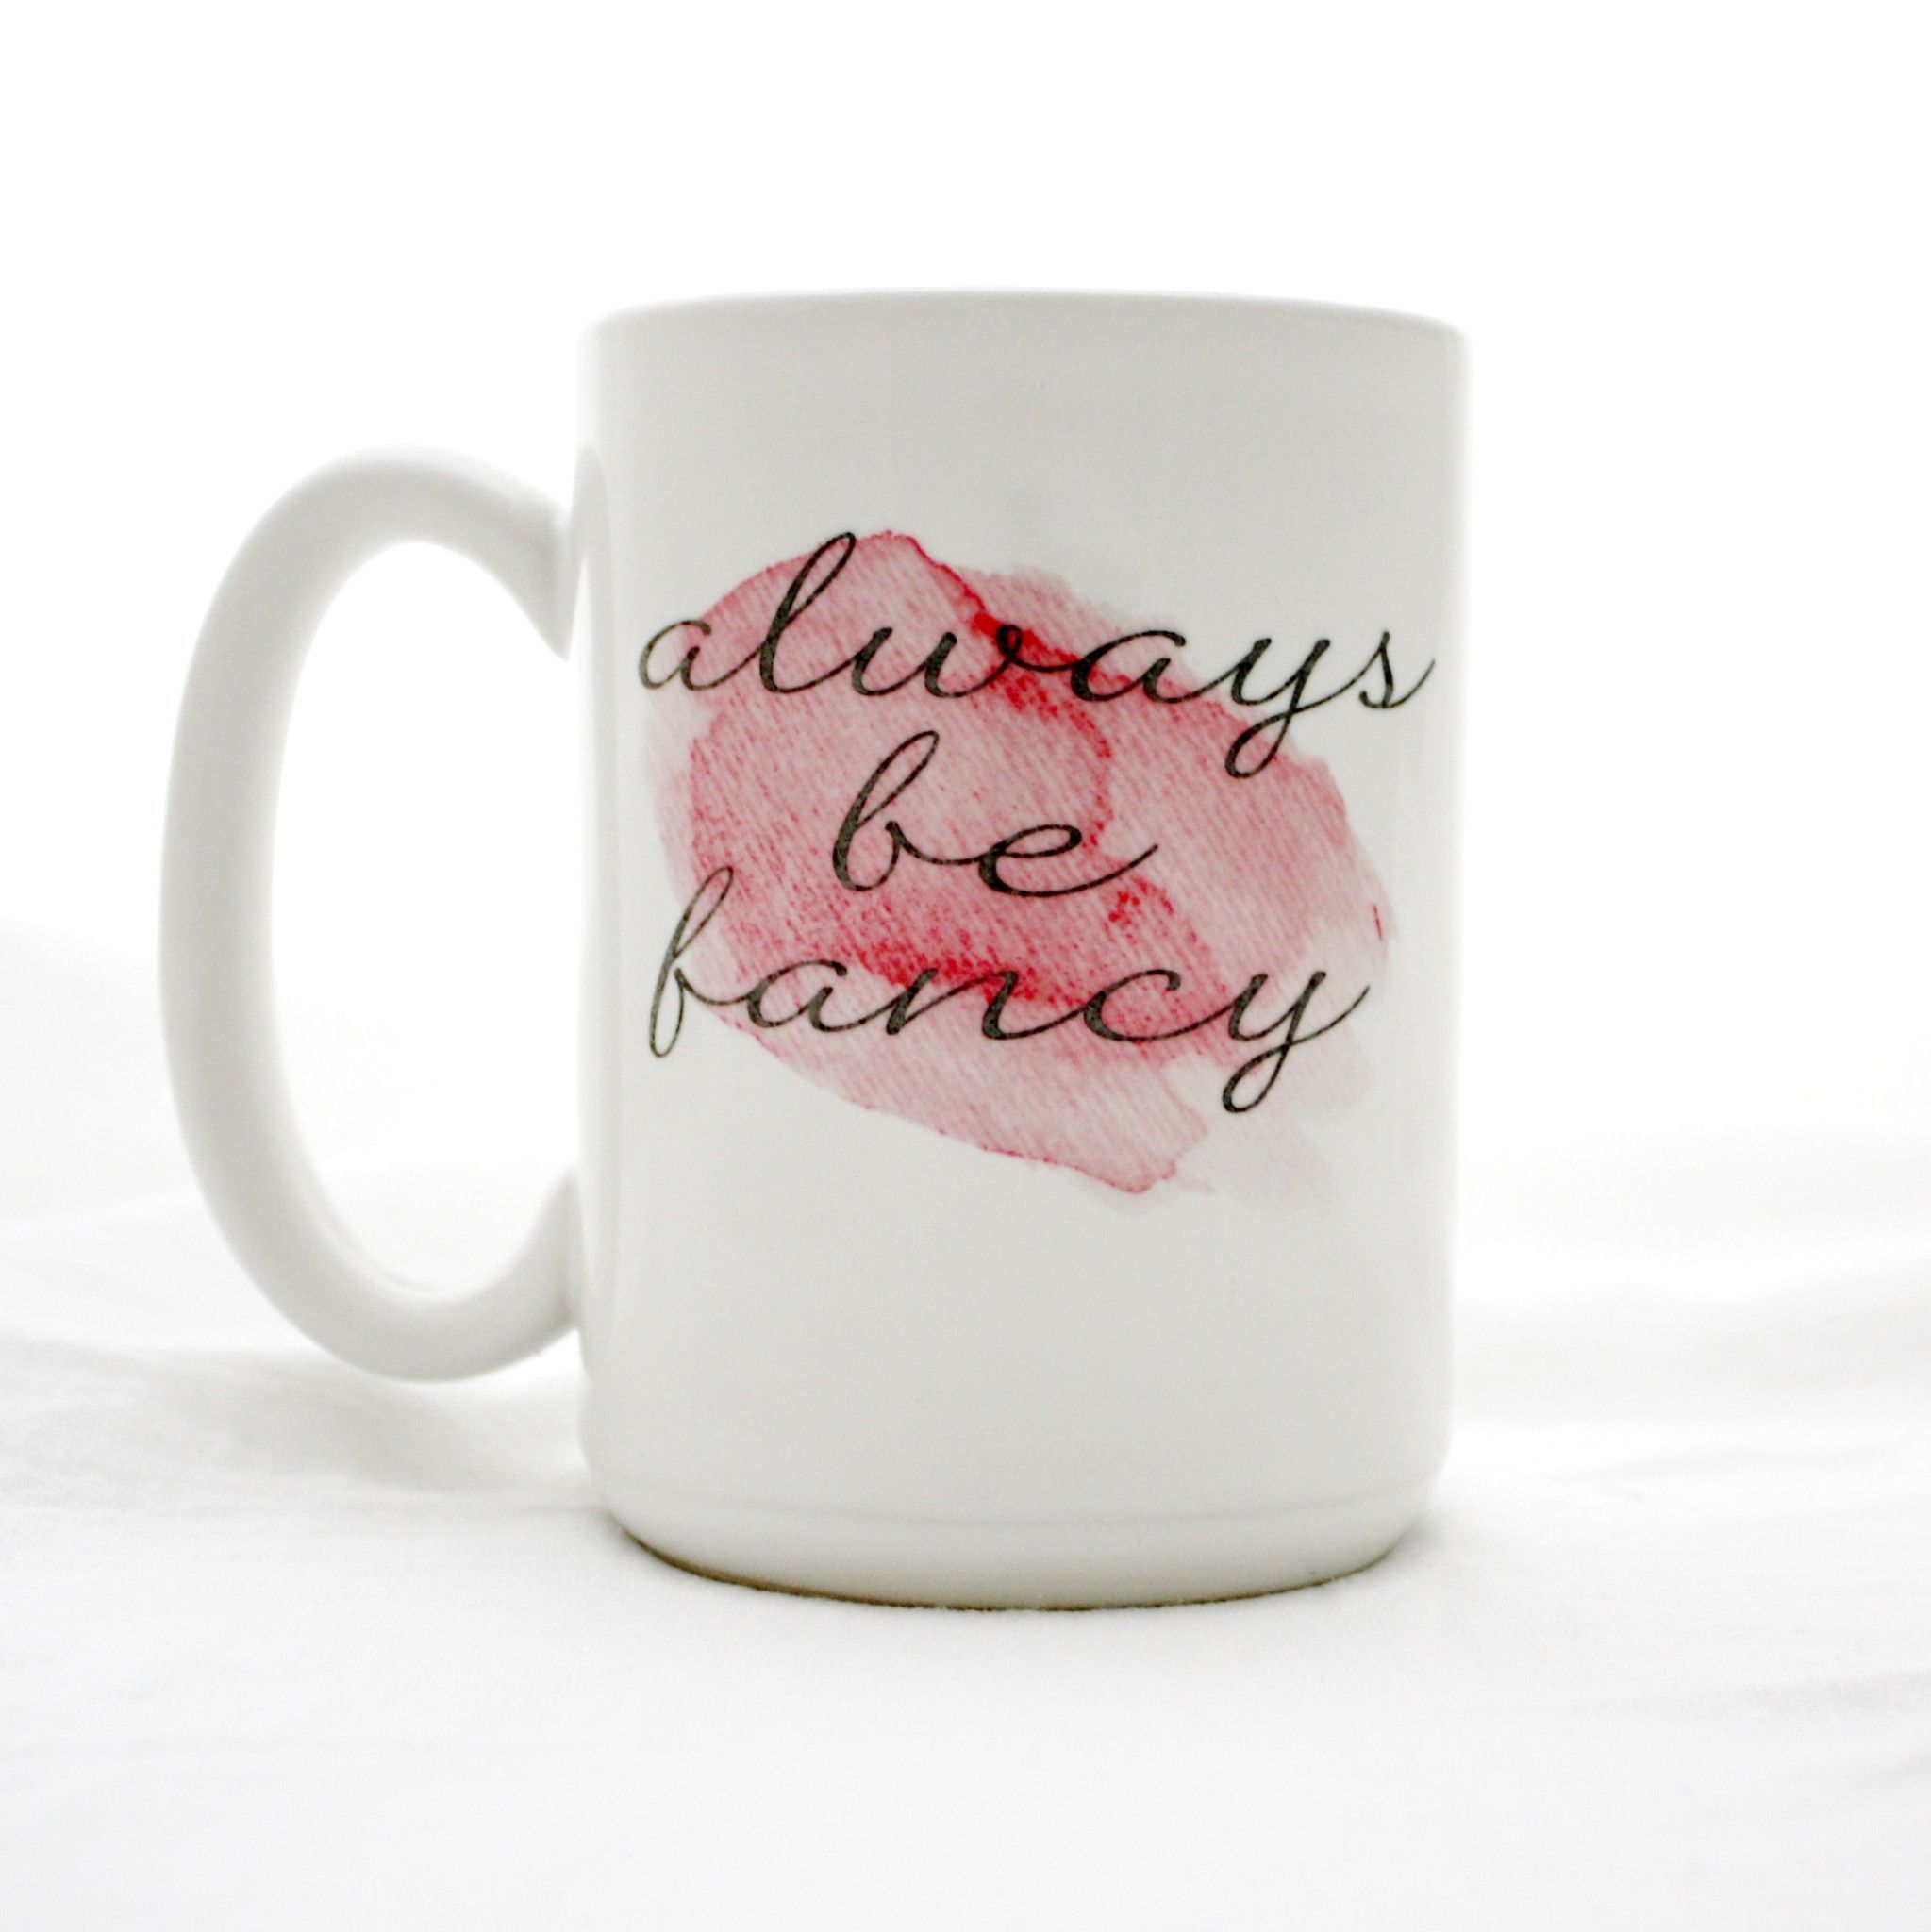 Large 15 Oz Coffee Mug Customized With A Reminder To Always Be